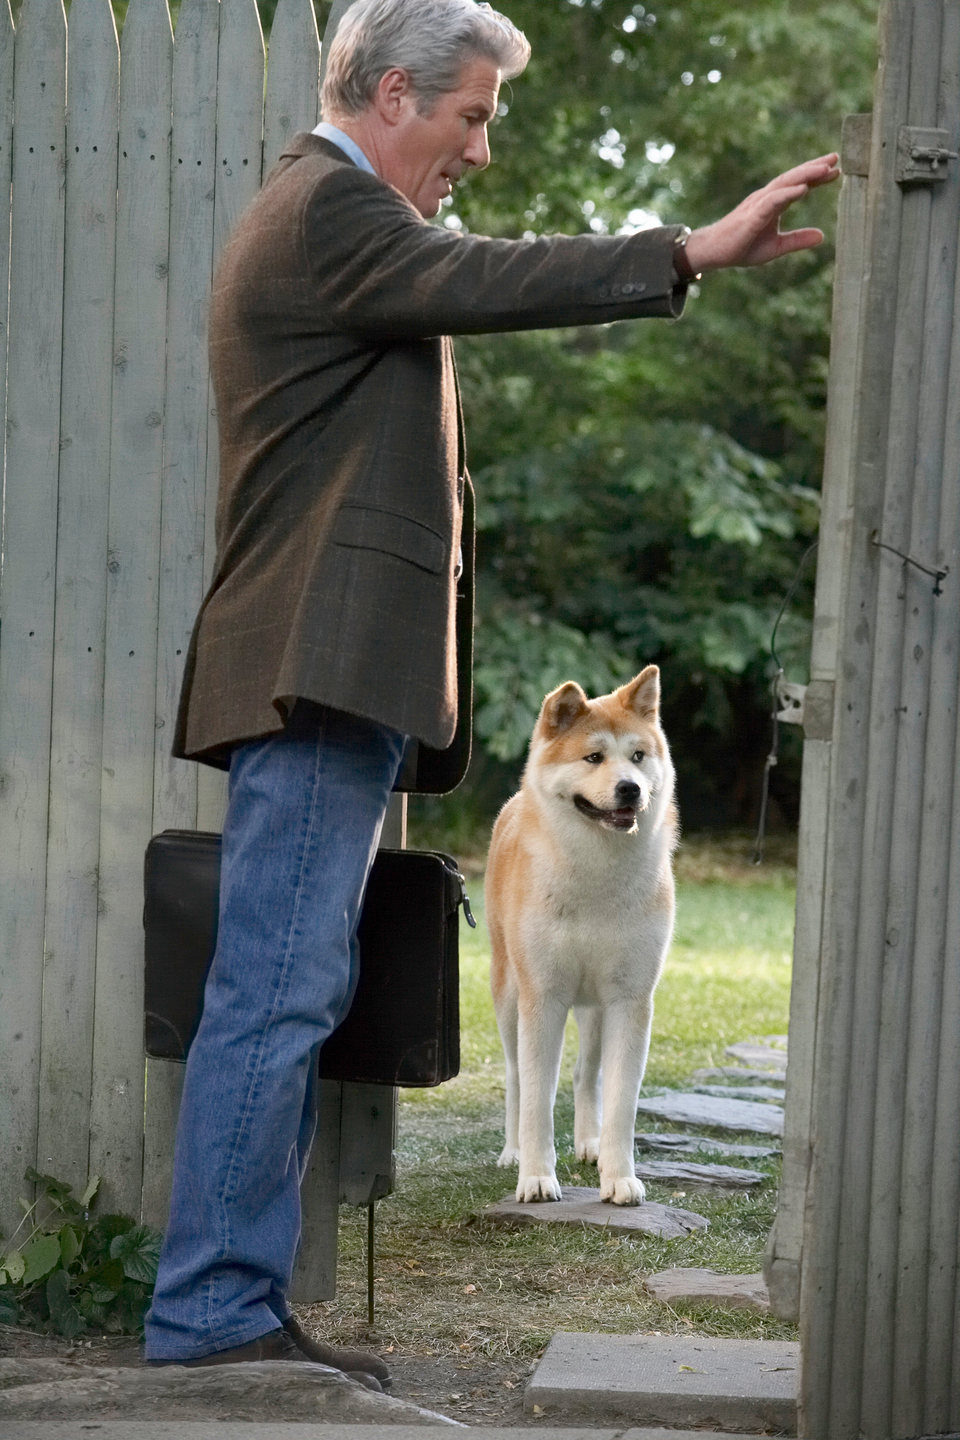 hachiko movie download yify